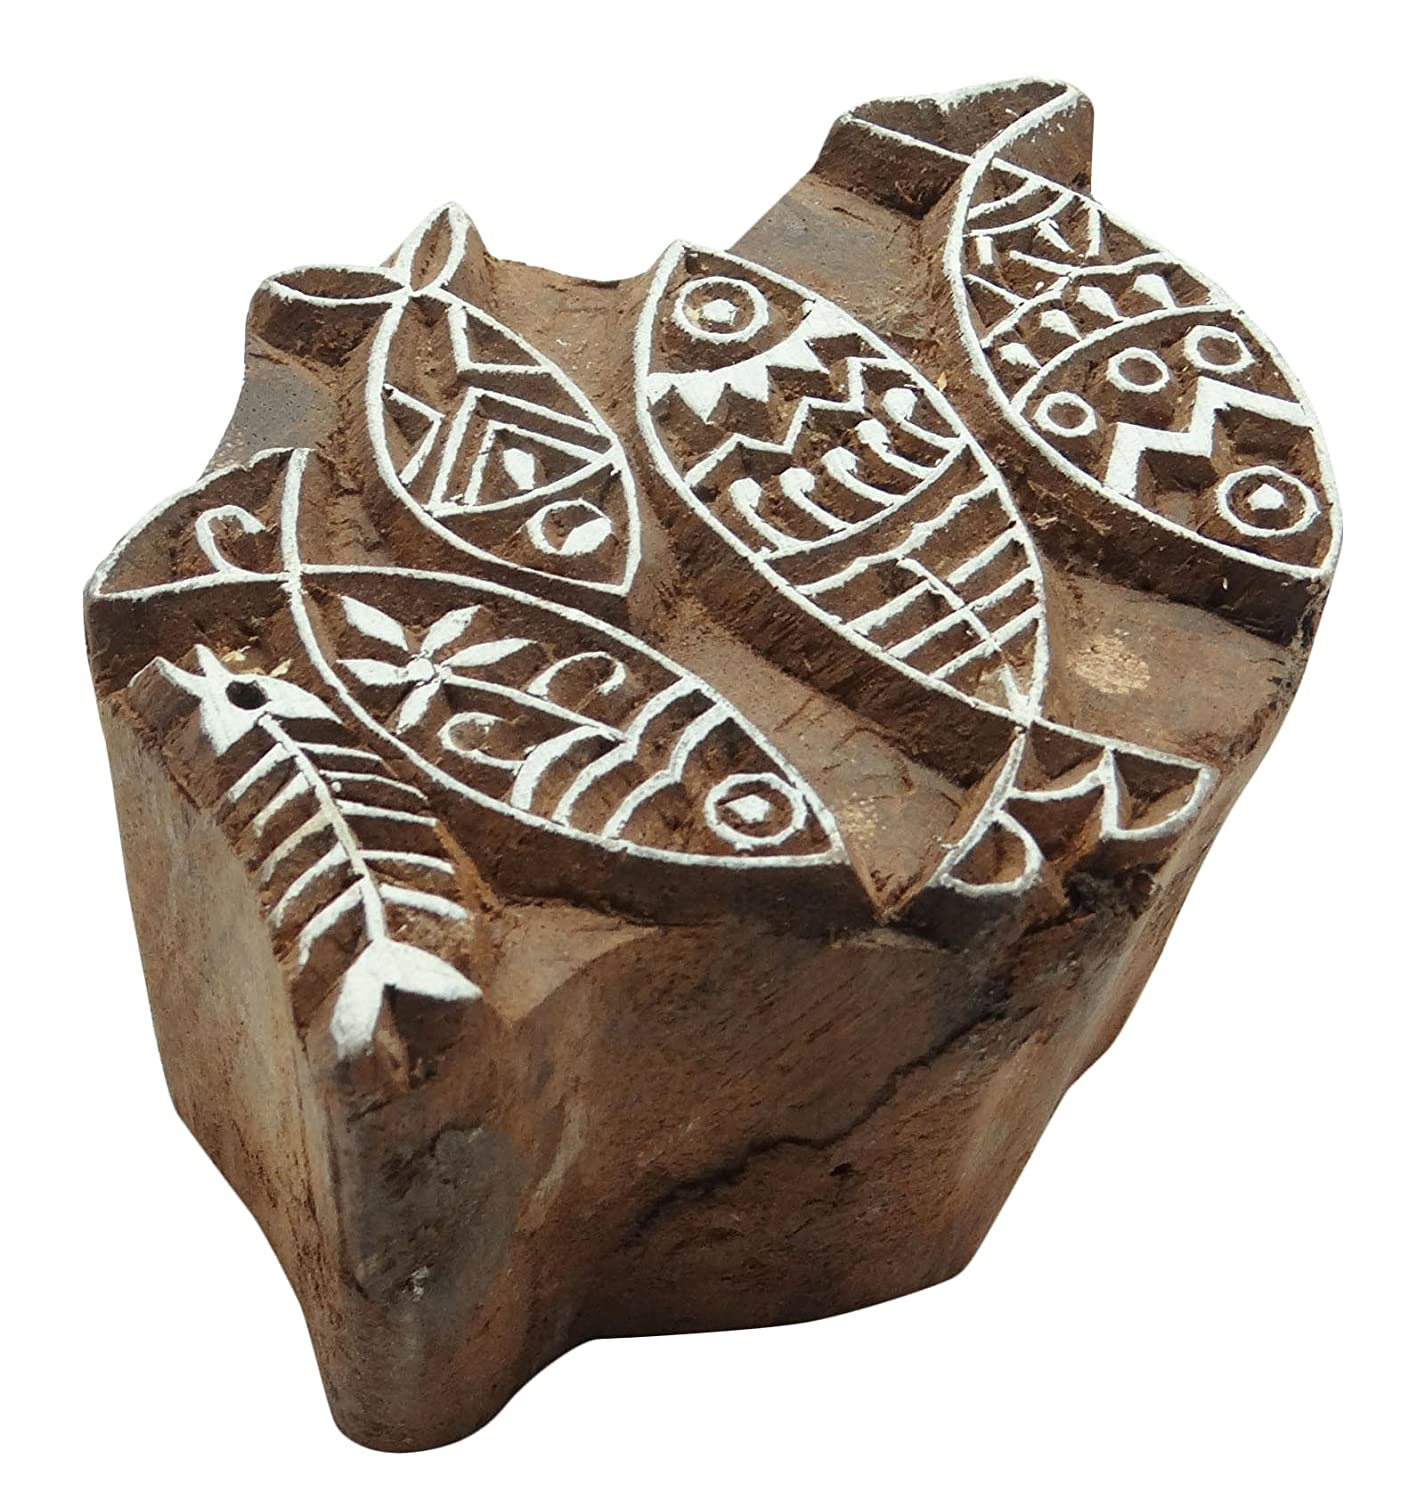 Fish Pattern Hand Carved Wood Printing Blocks Textile Stamp Wooden Brown Block